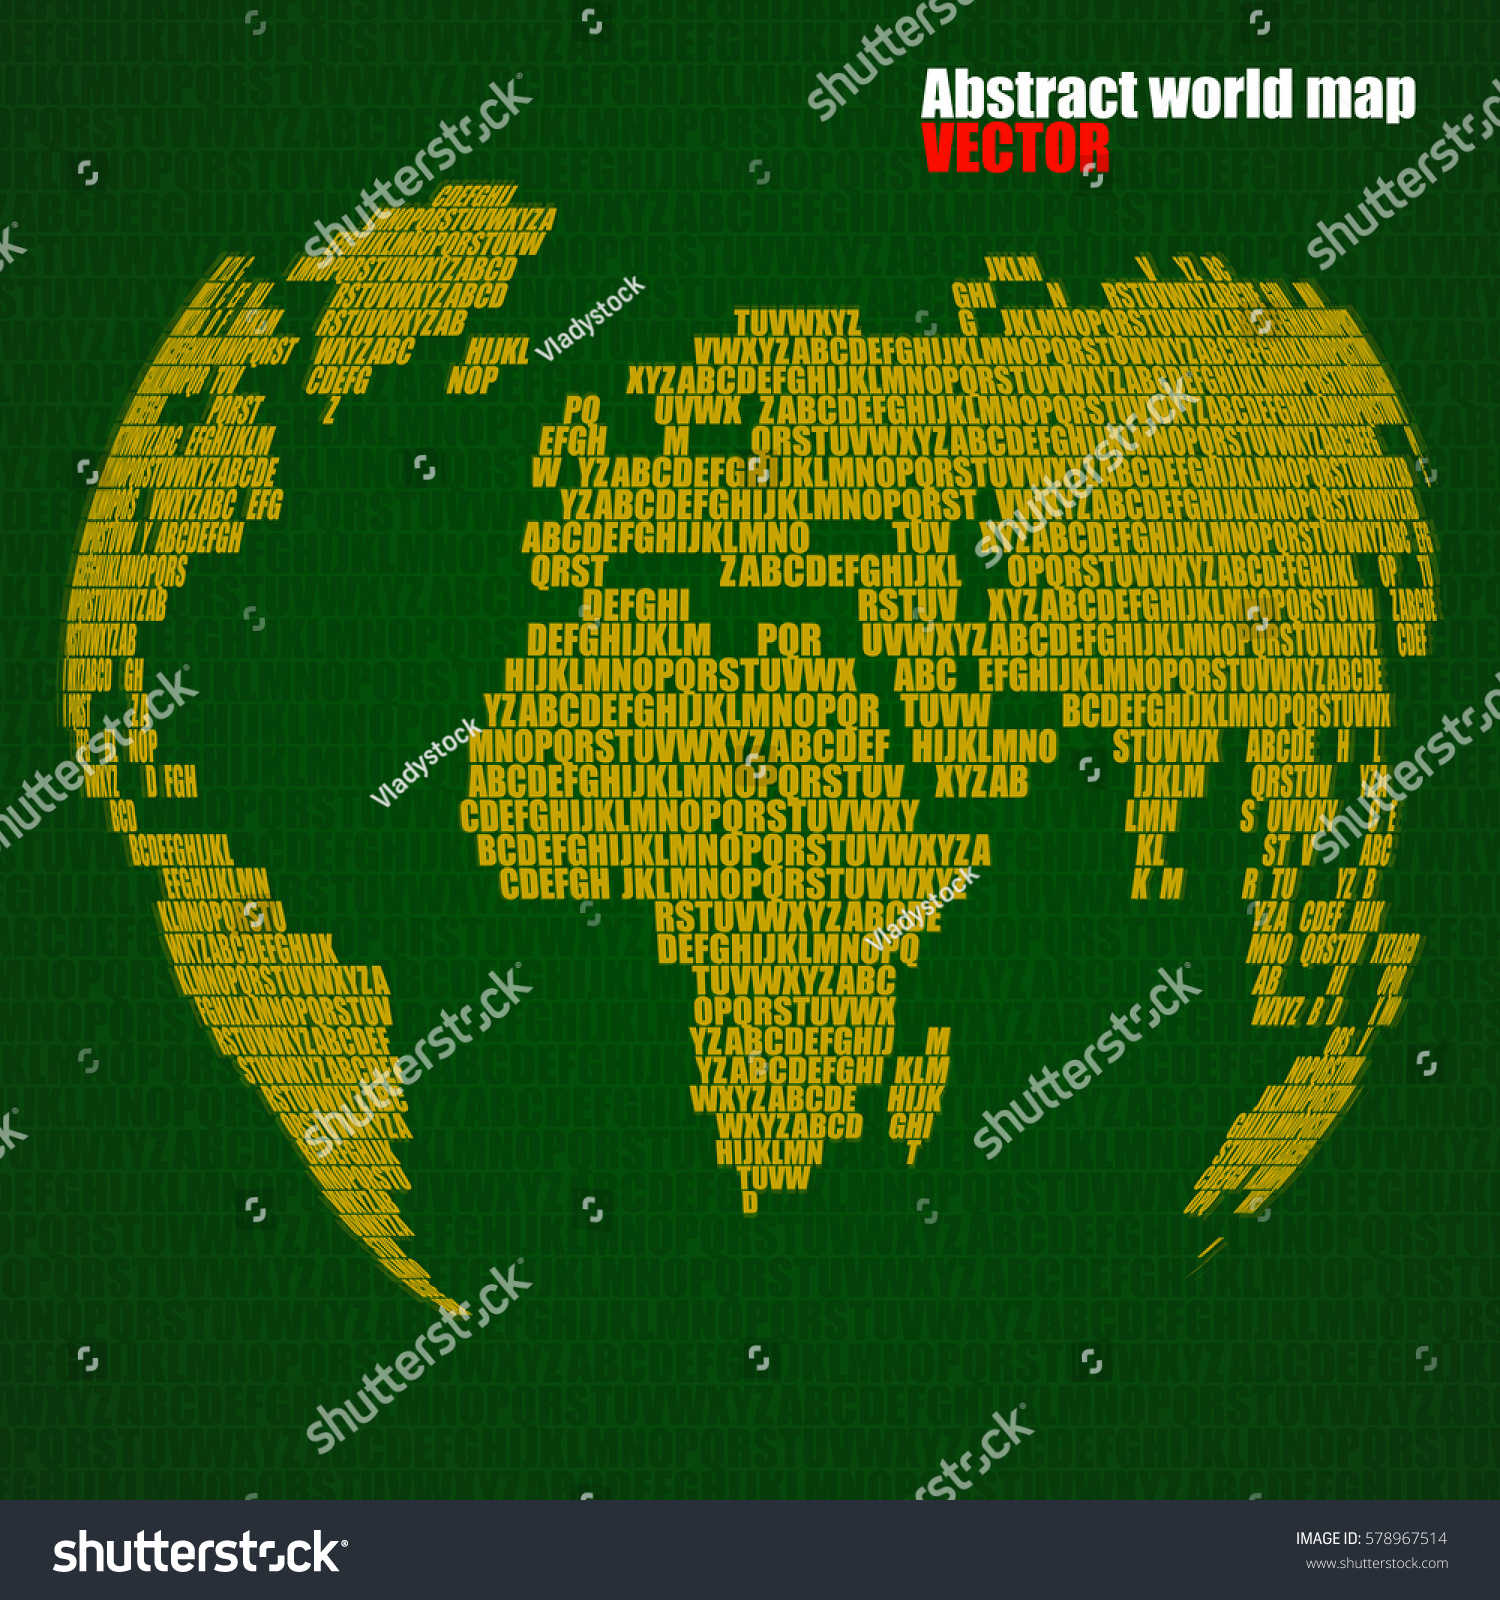 Abstract world map letters english alphabet stock vector 578967514 abstract world map with letters of english alphabet vector globe background gumiabroncs Image collections